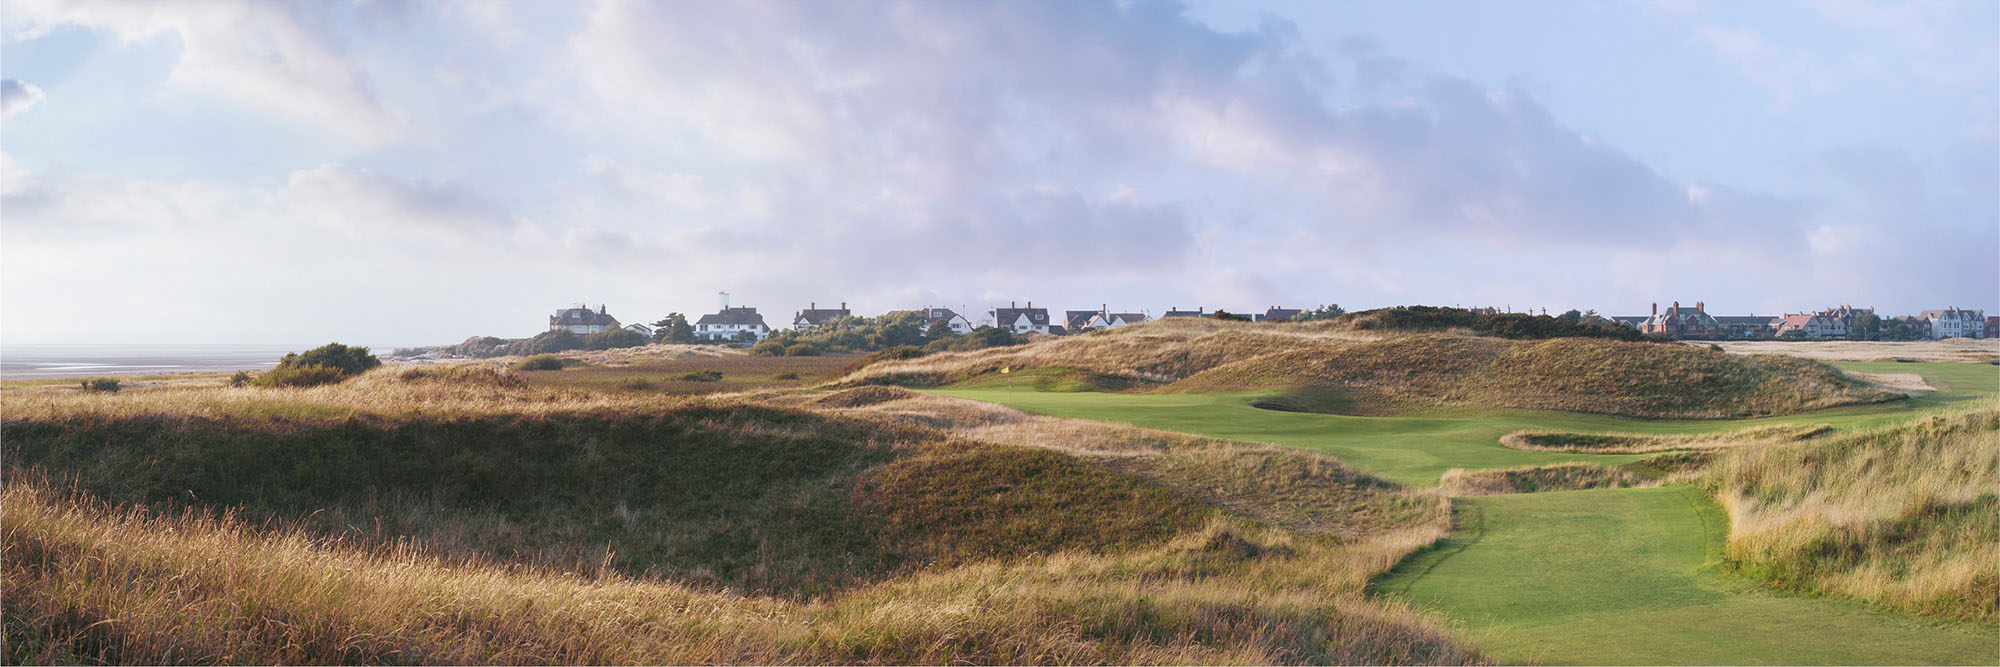 Golf Course Image - Royal Liverpool No. 11